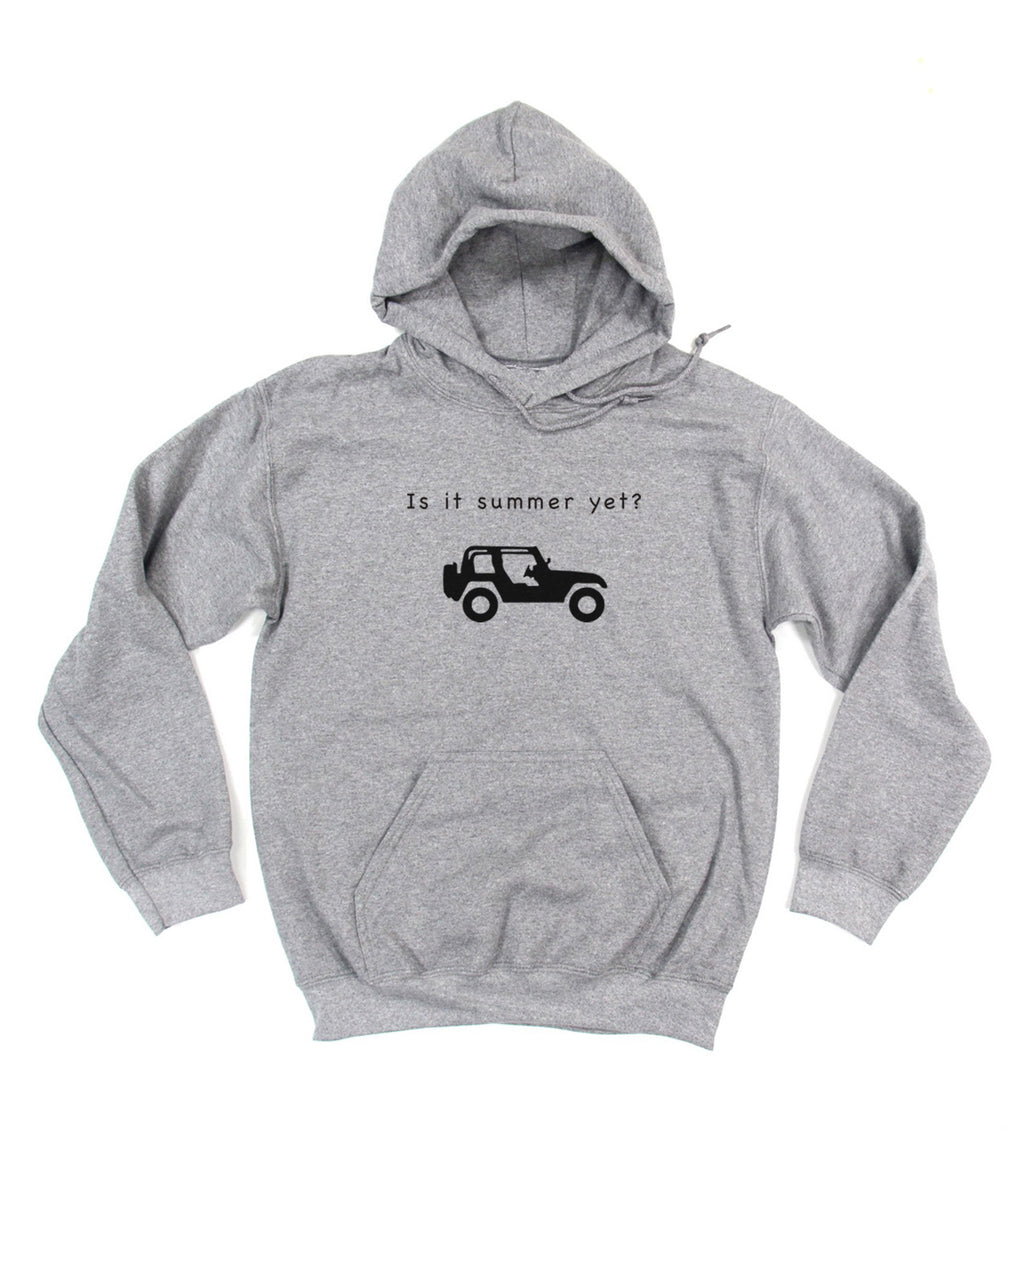 IS IT SUMMER YET JEEP HOODIE